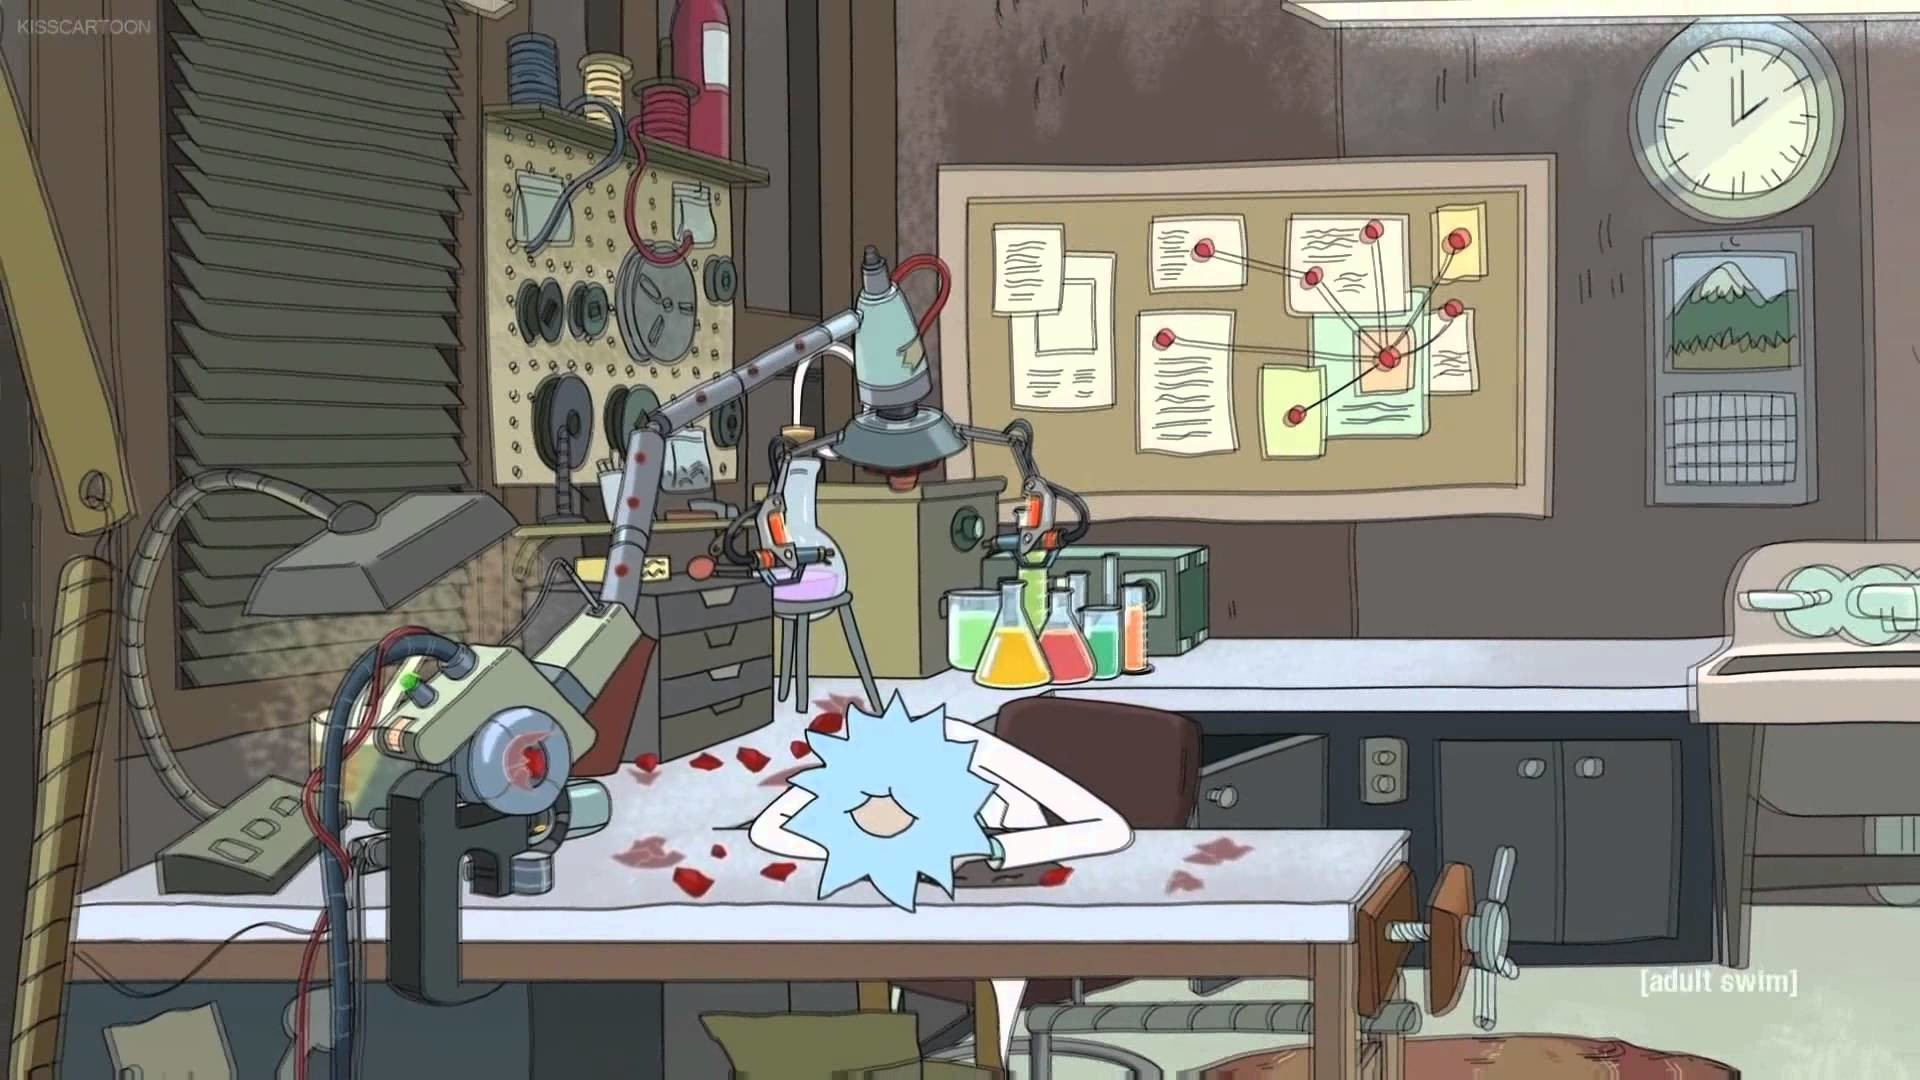 rick and morty season 2 complete download